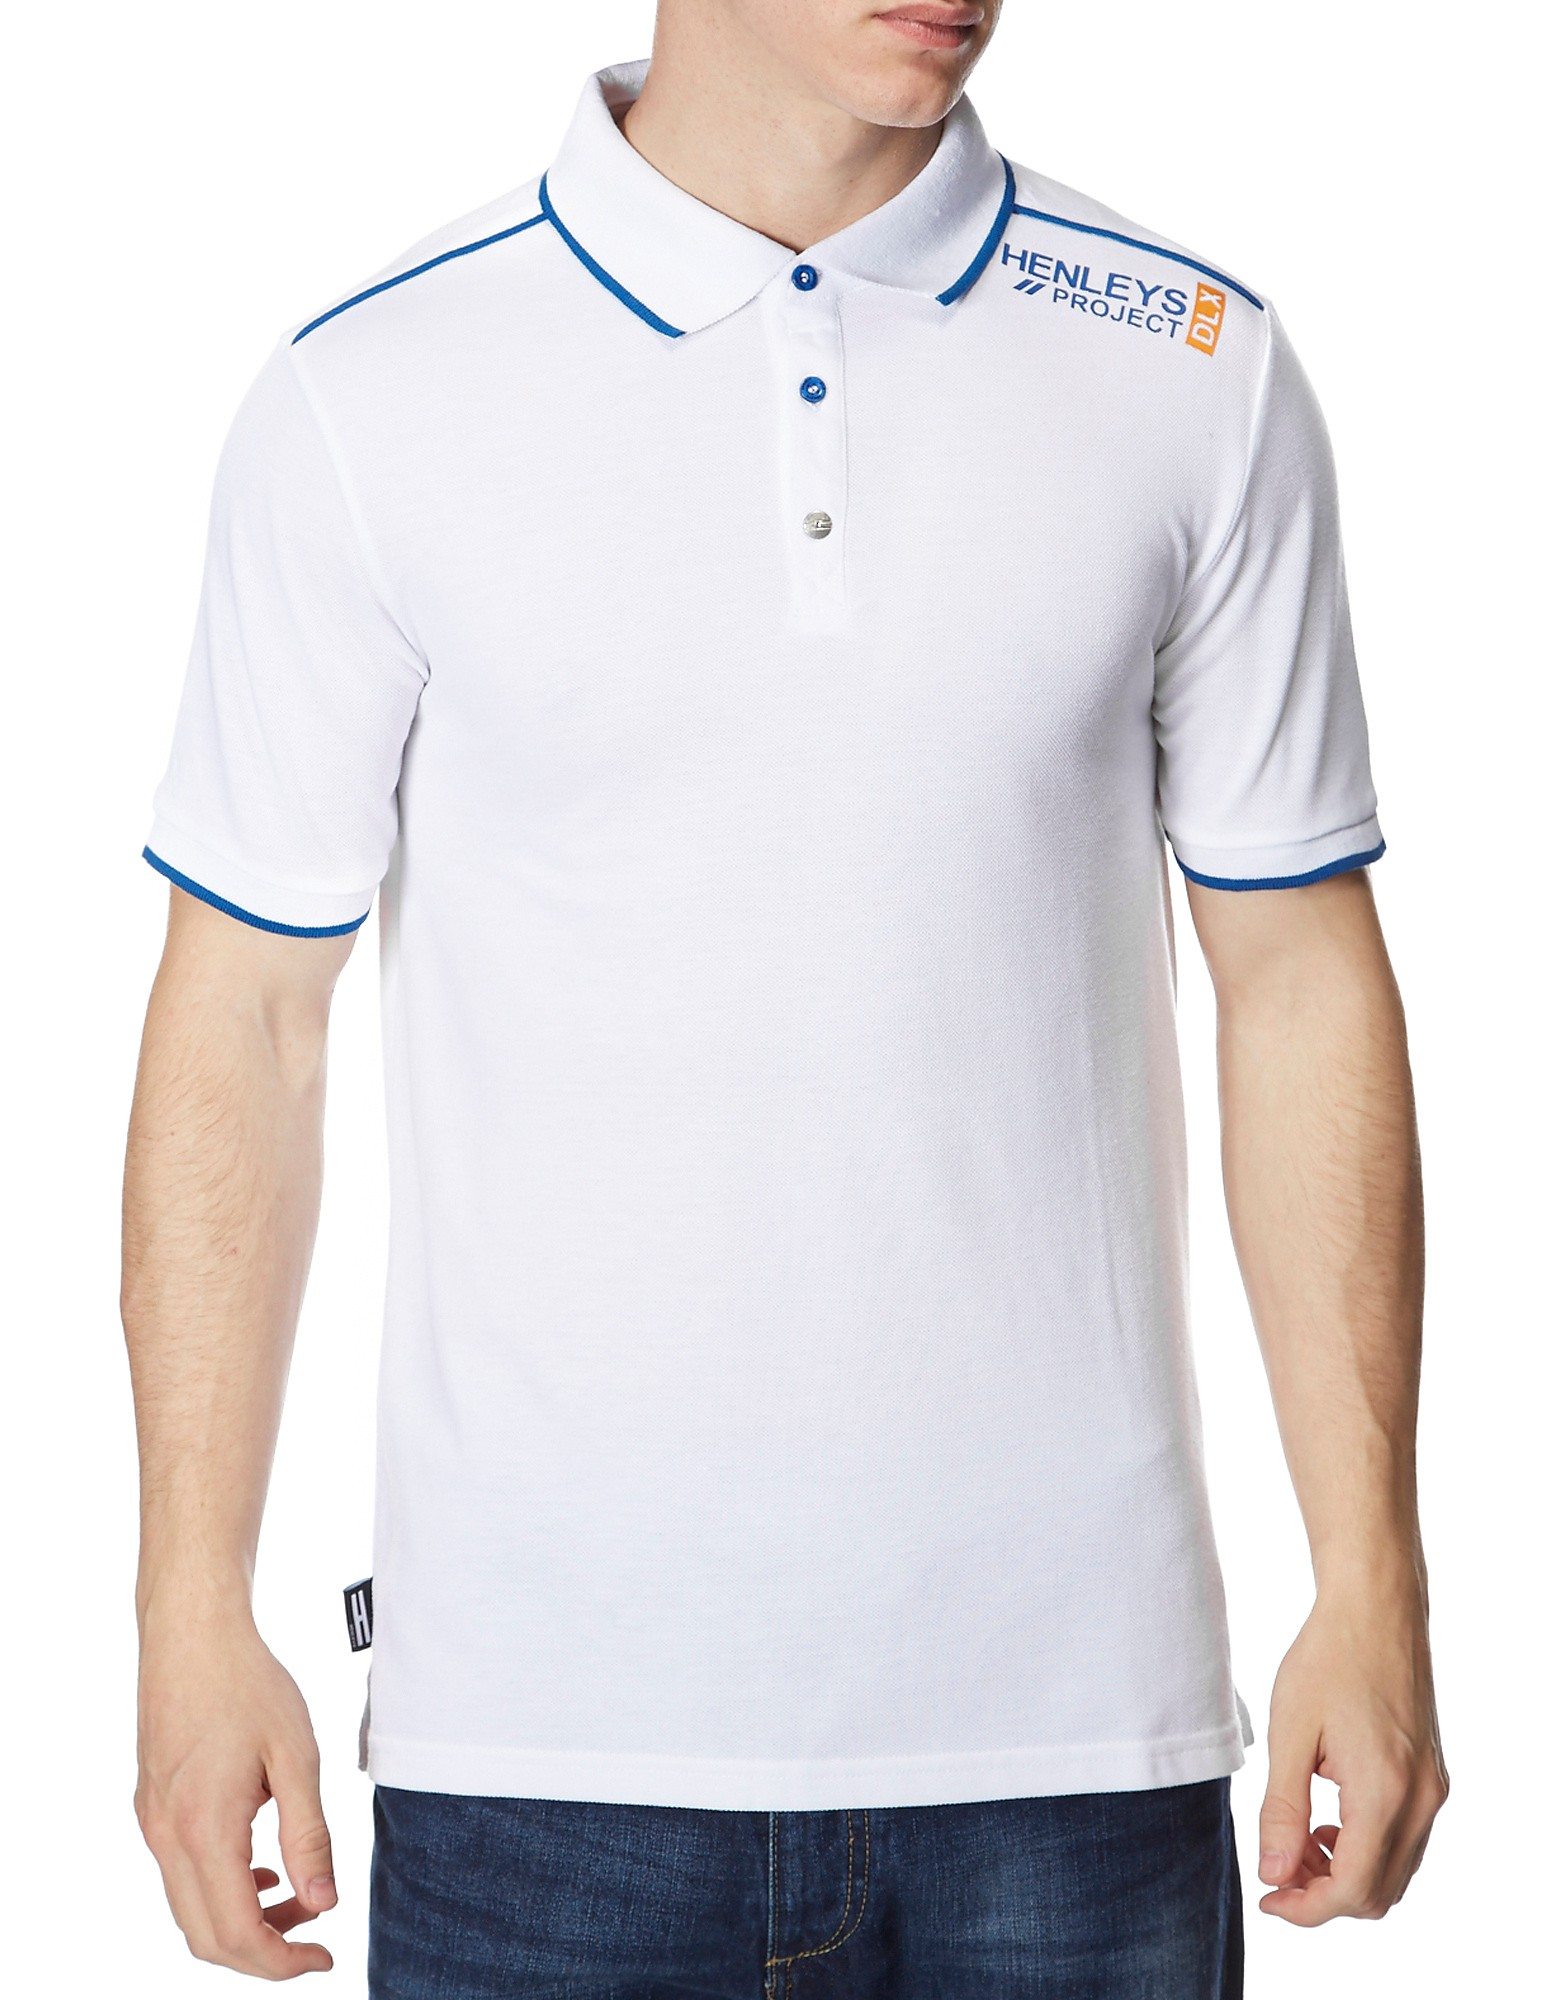 Henleys Ralster Polo Shirt